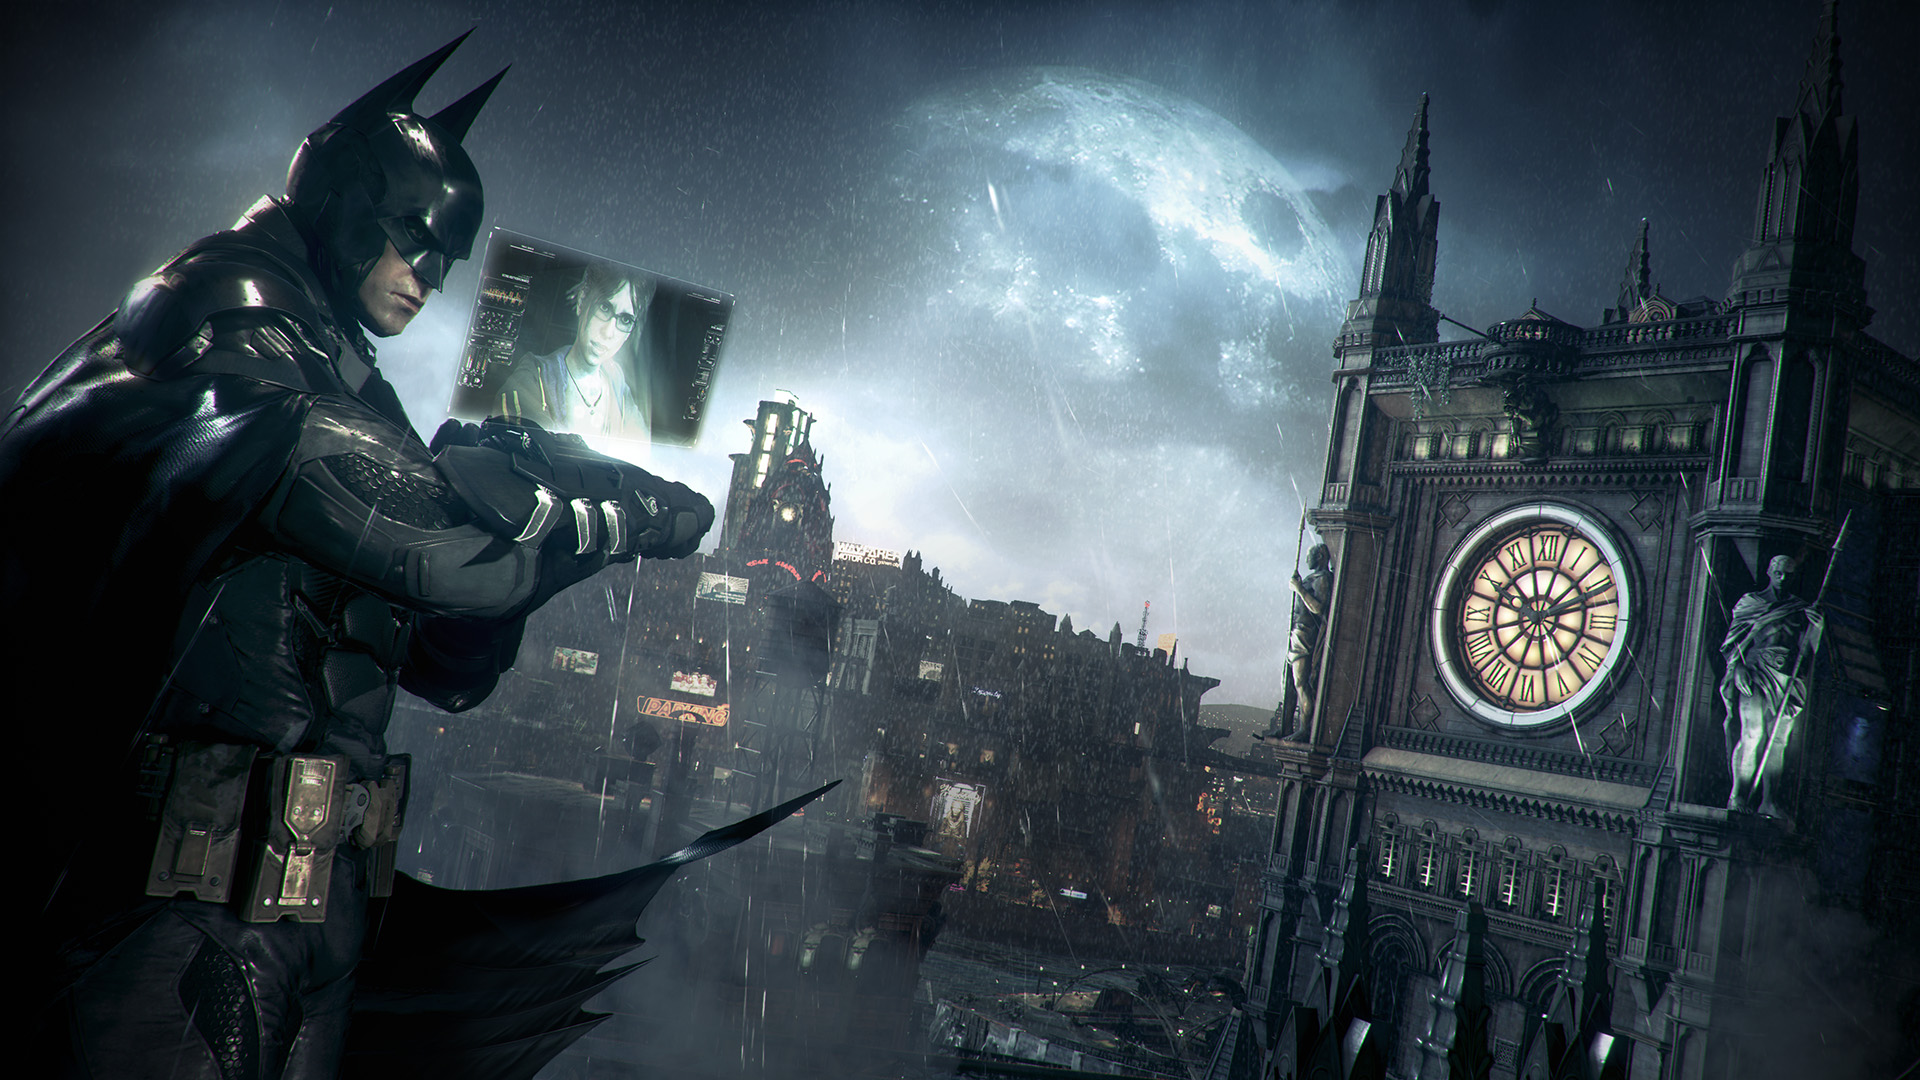 Return to Ace Chemicals with part 2 of the Batman: Arkham Knight trailer series